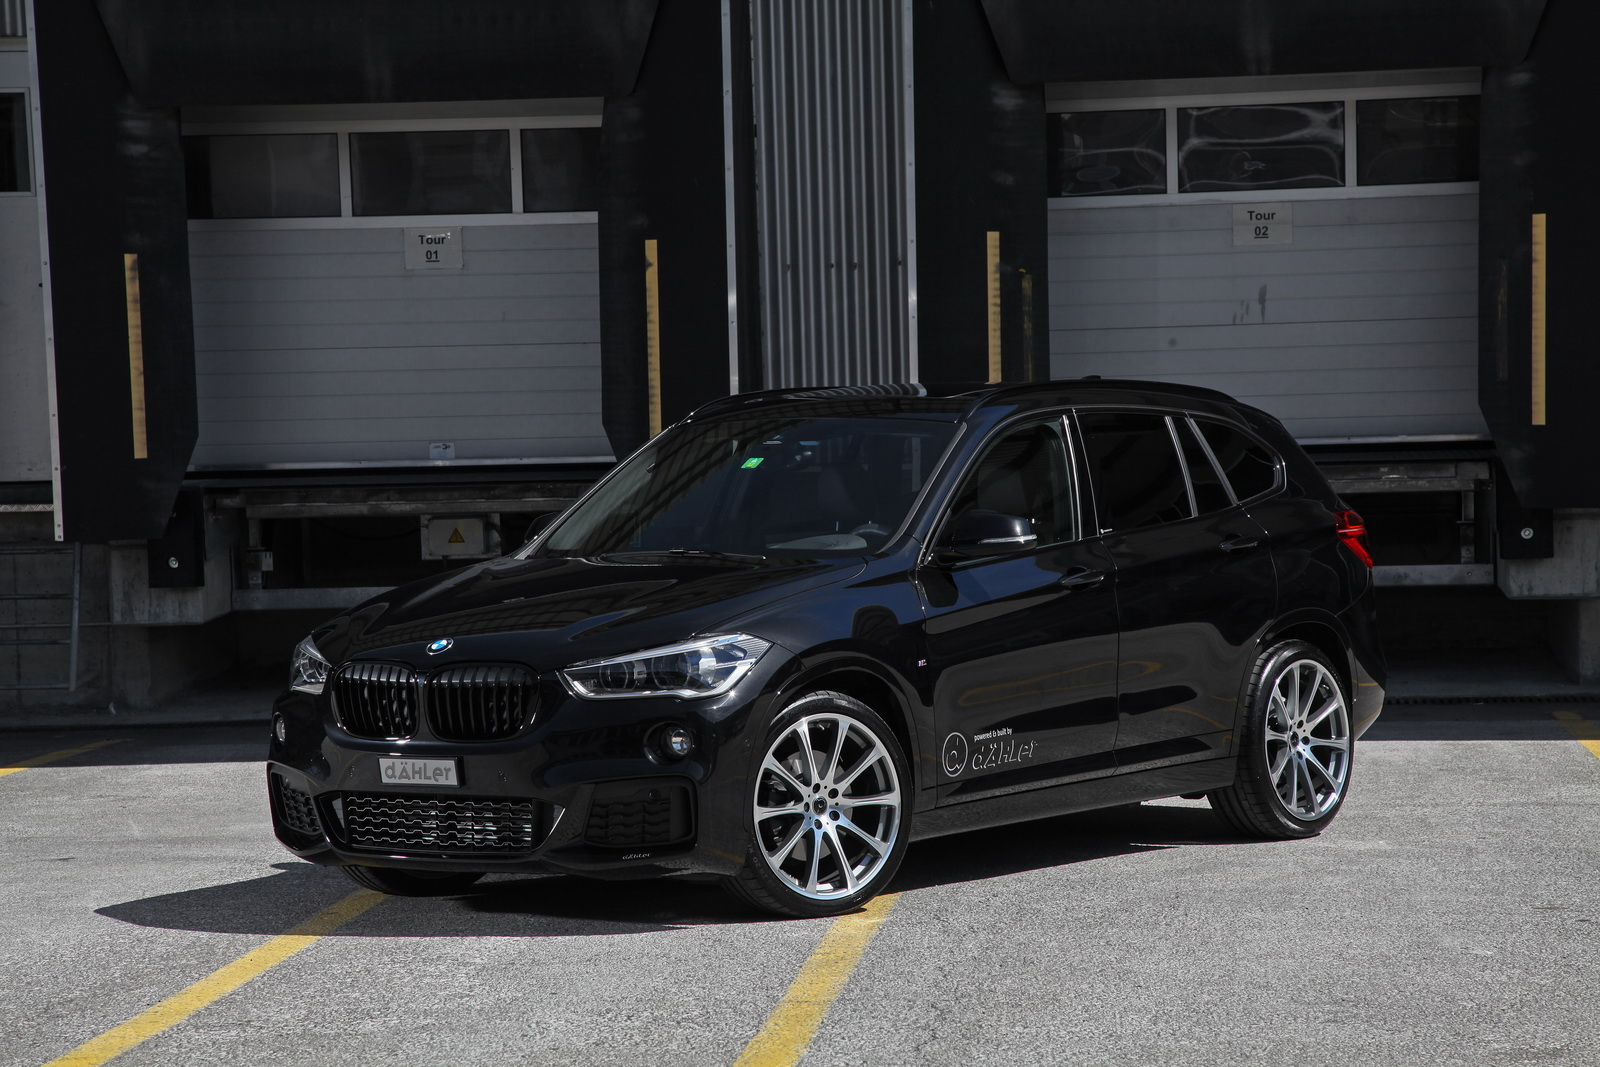 The German car tuning atelier Dahler has released a new tuning kit compatible with multiple BMW X1 SUV models